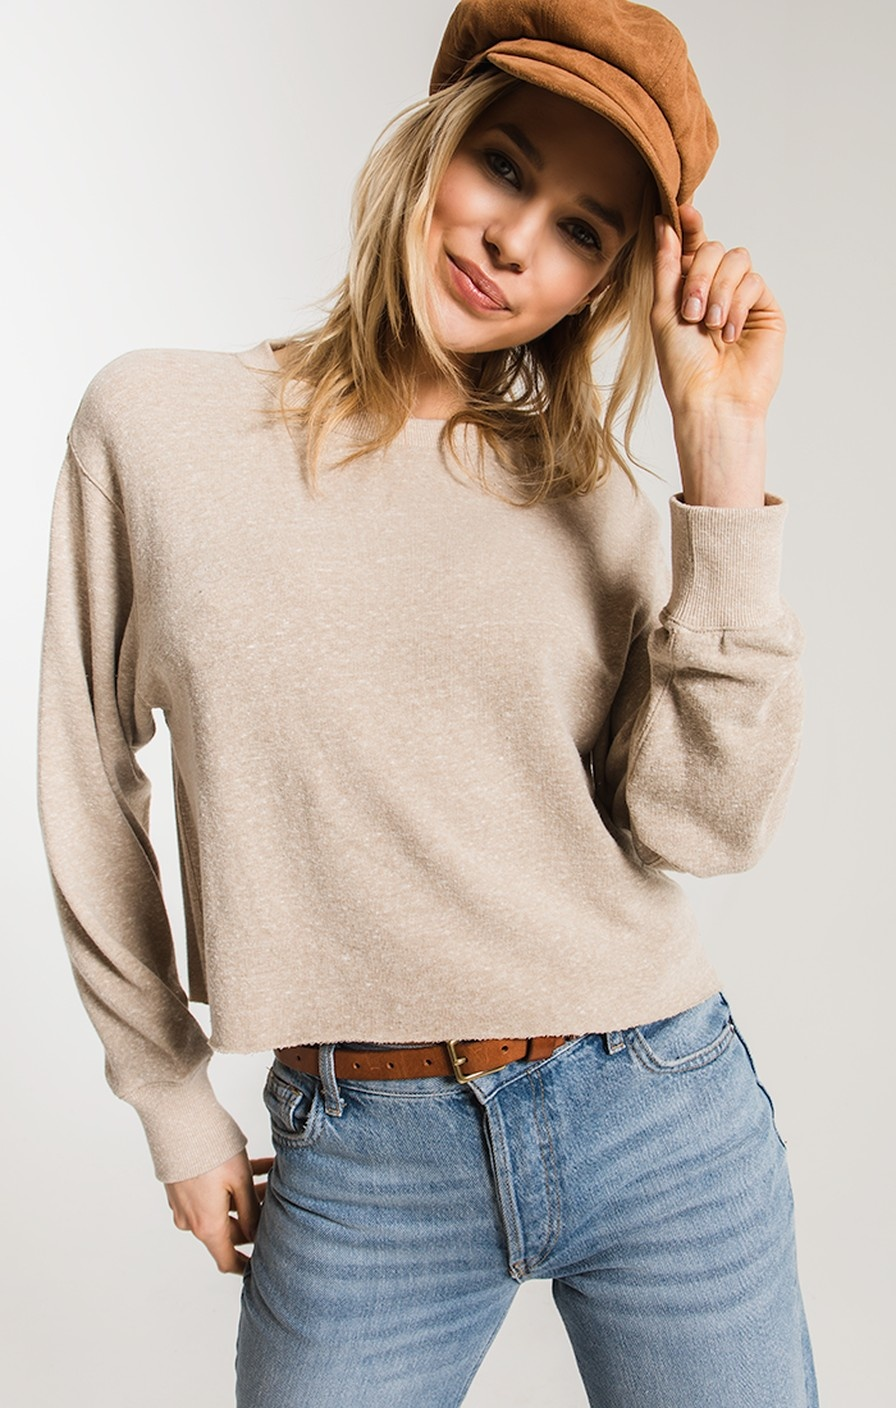 Z Supply L/S Cropped Tee